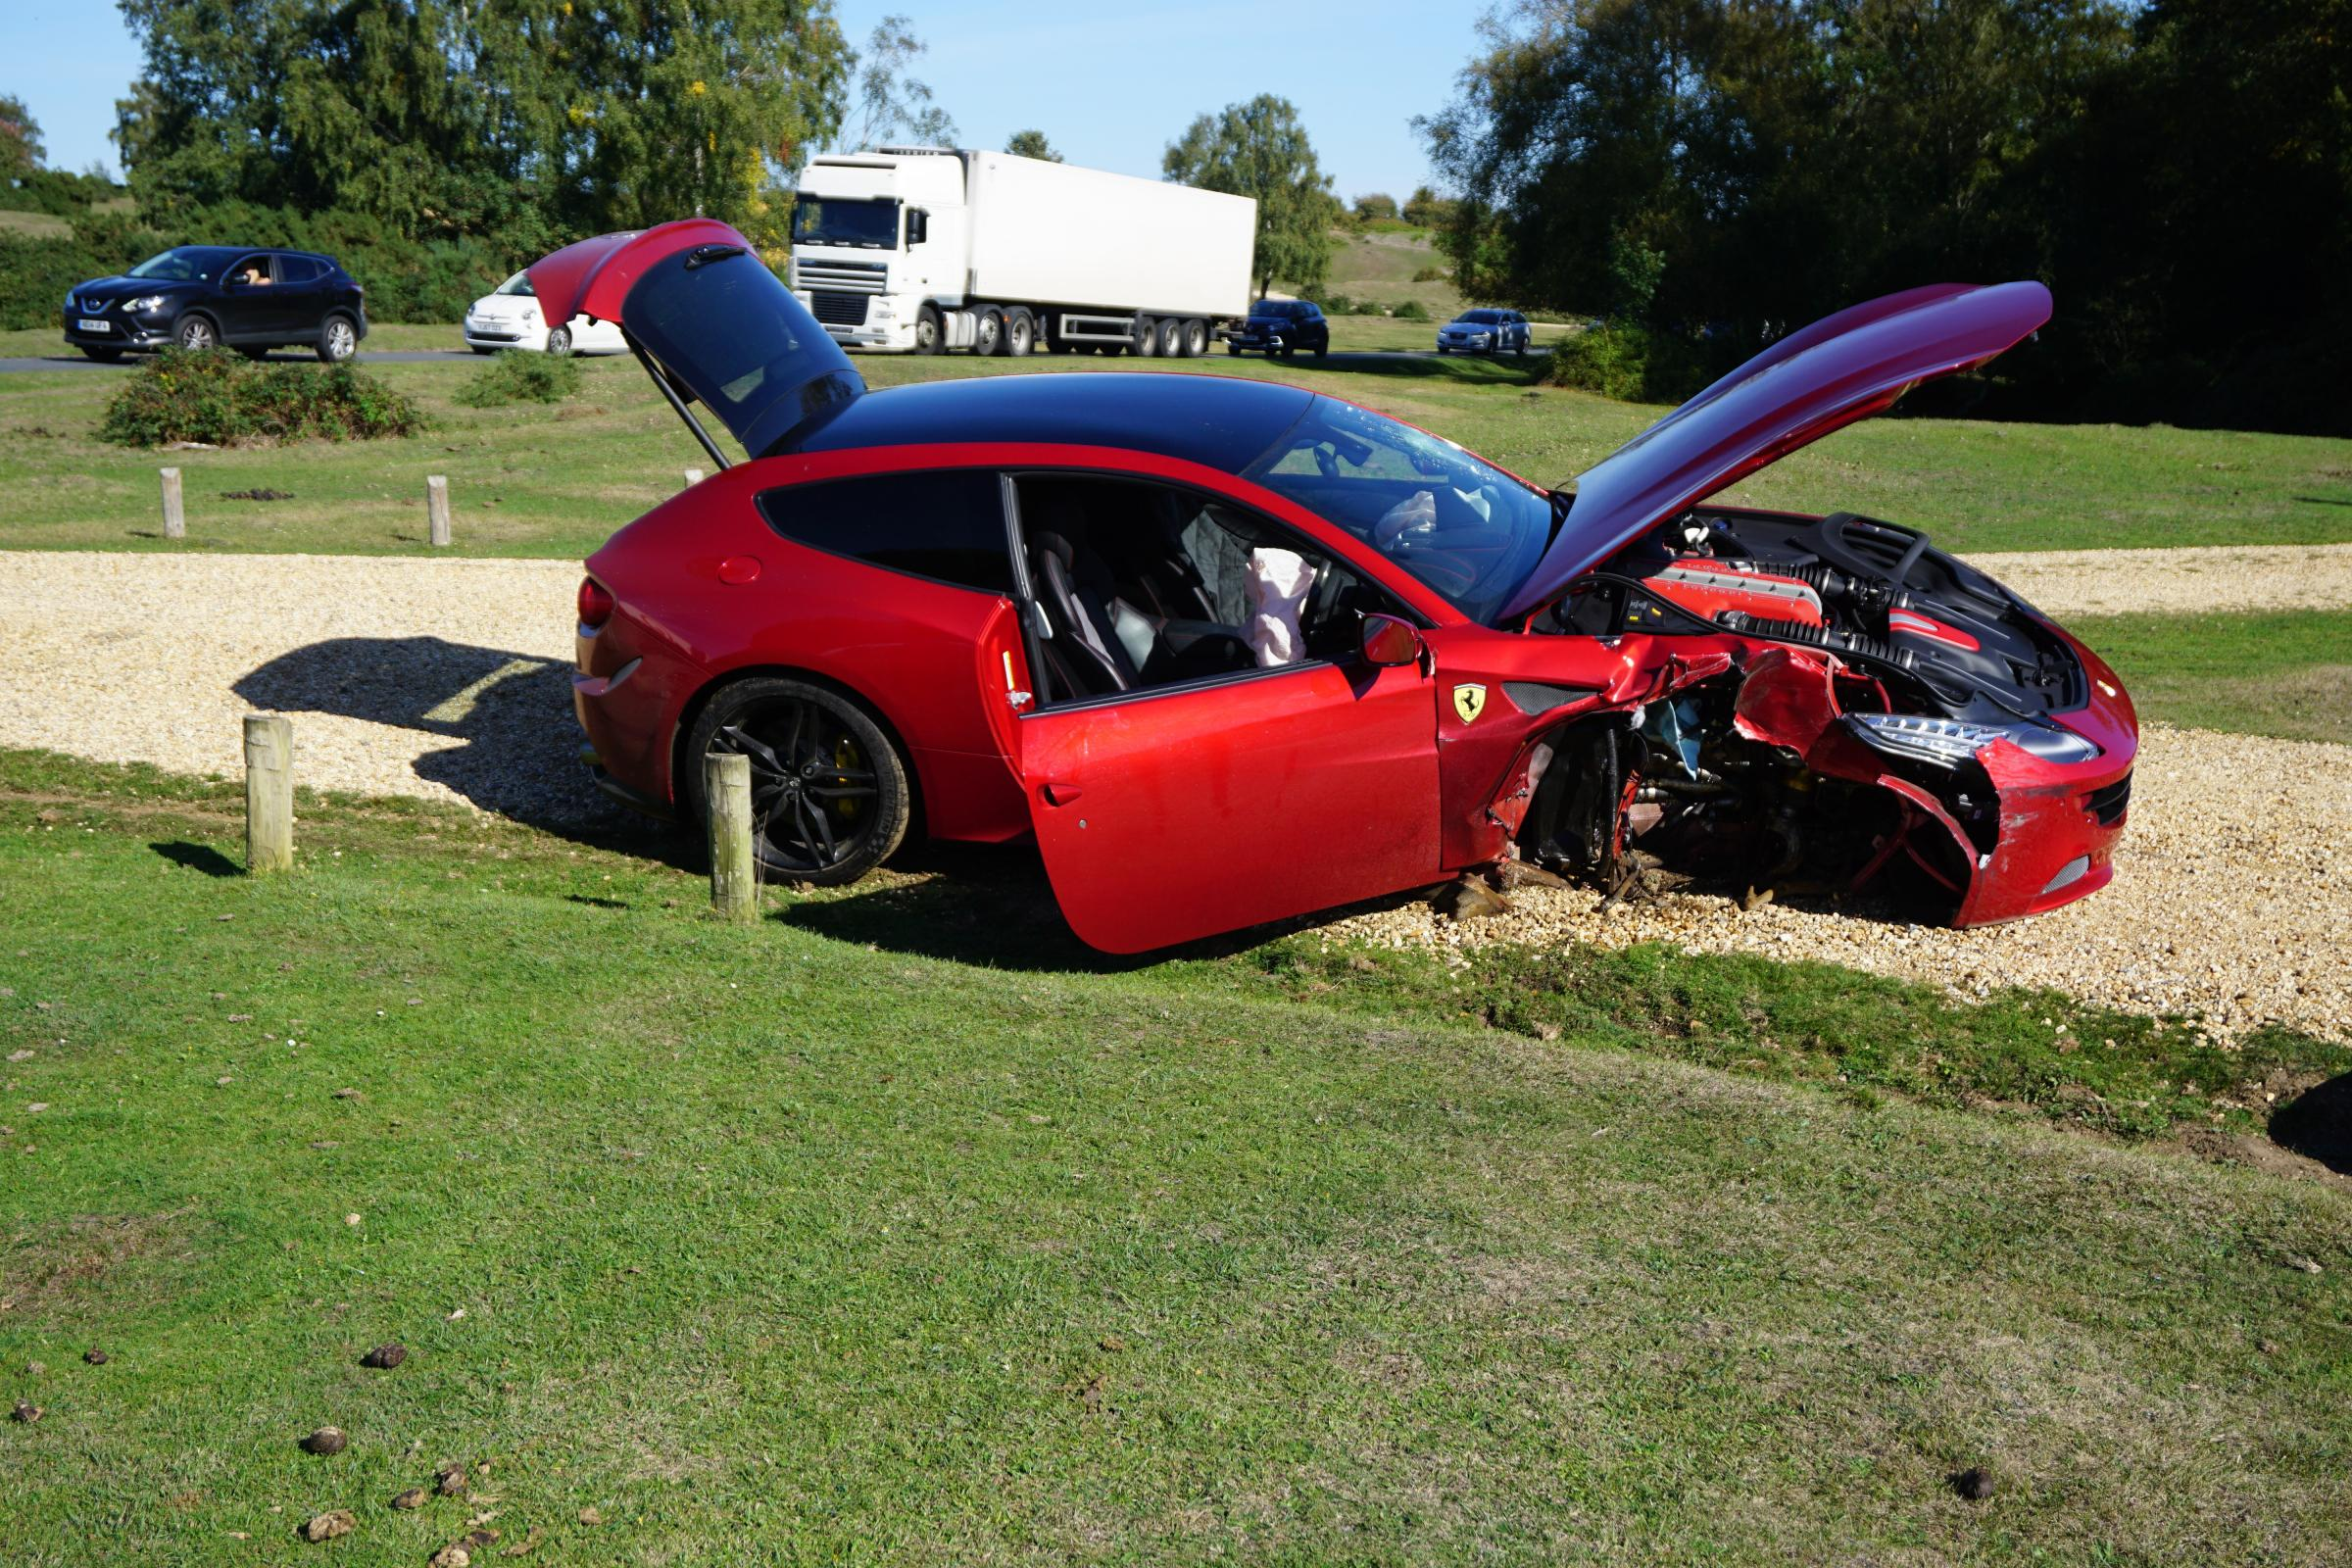 The Ferrari, worth around £200,000, was damaged as well